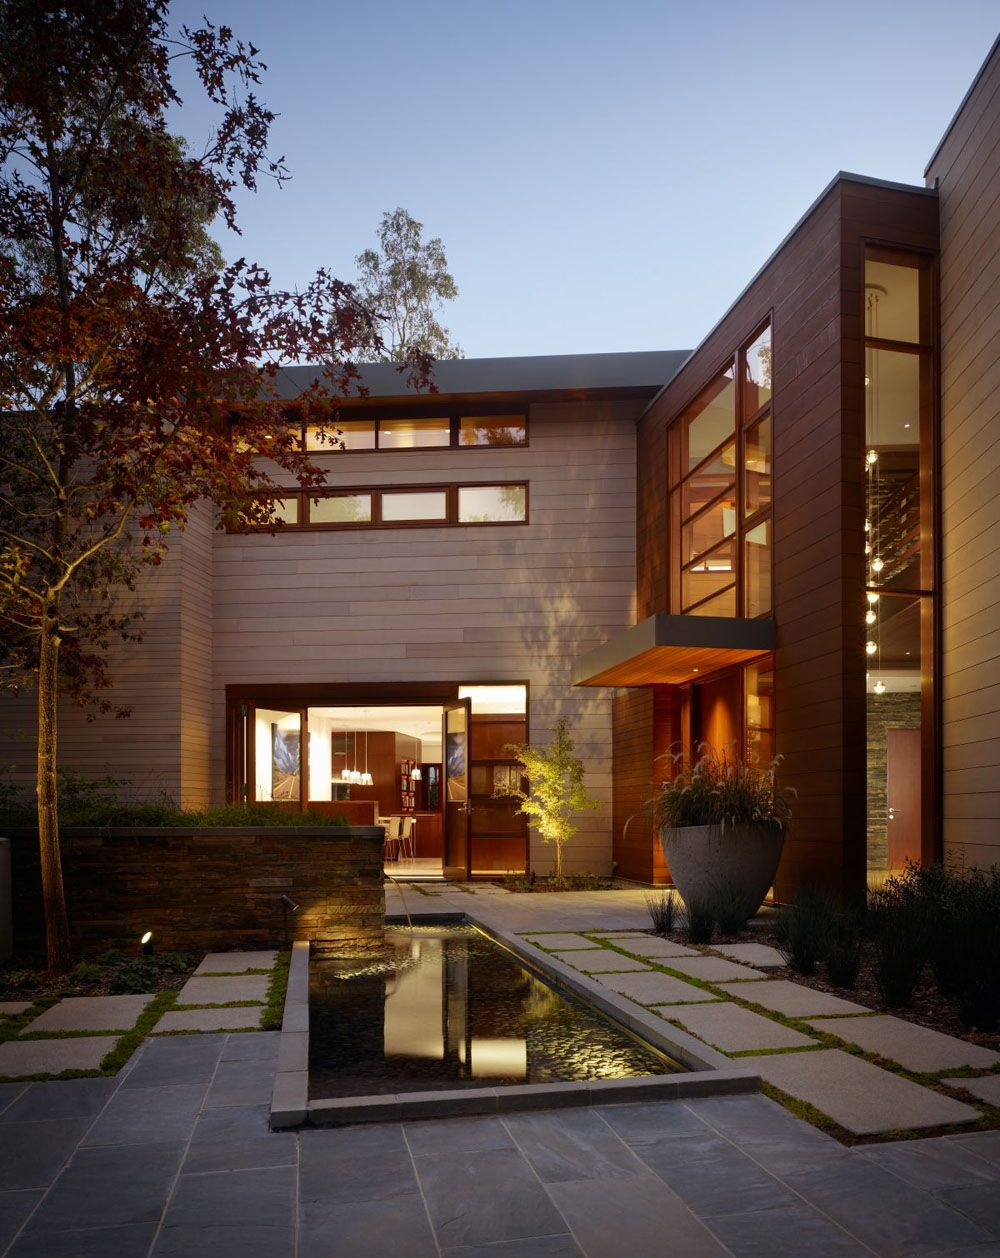 House Mandeville Canyon Residence by Rockefeller